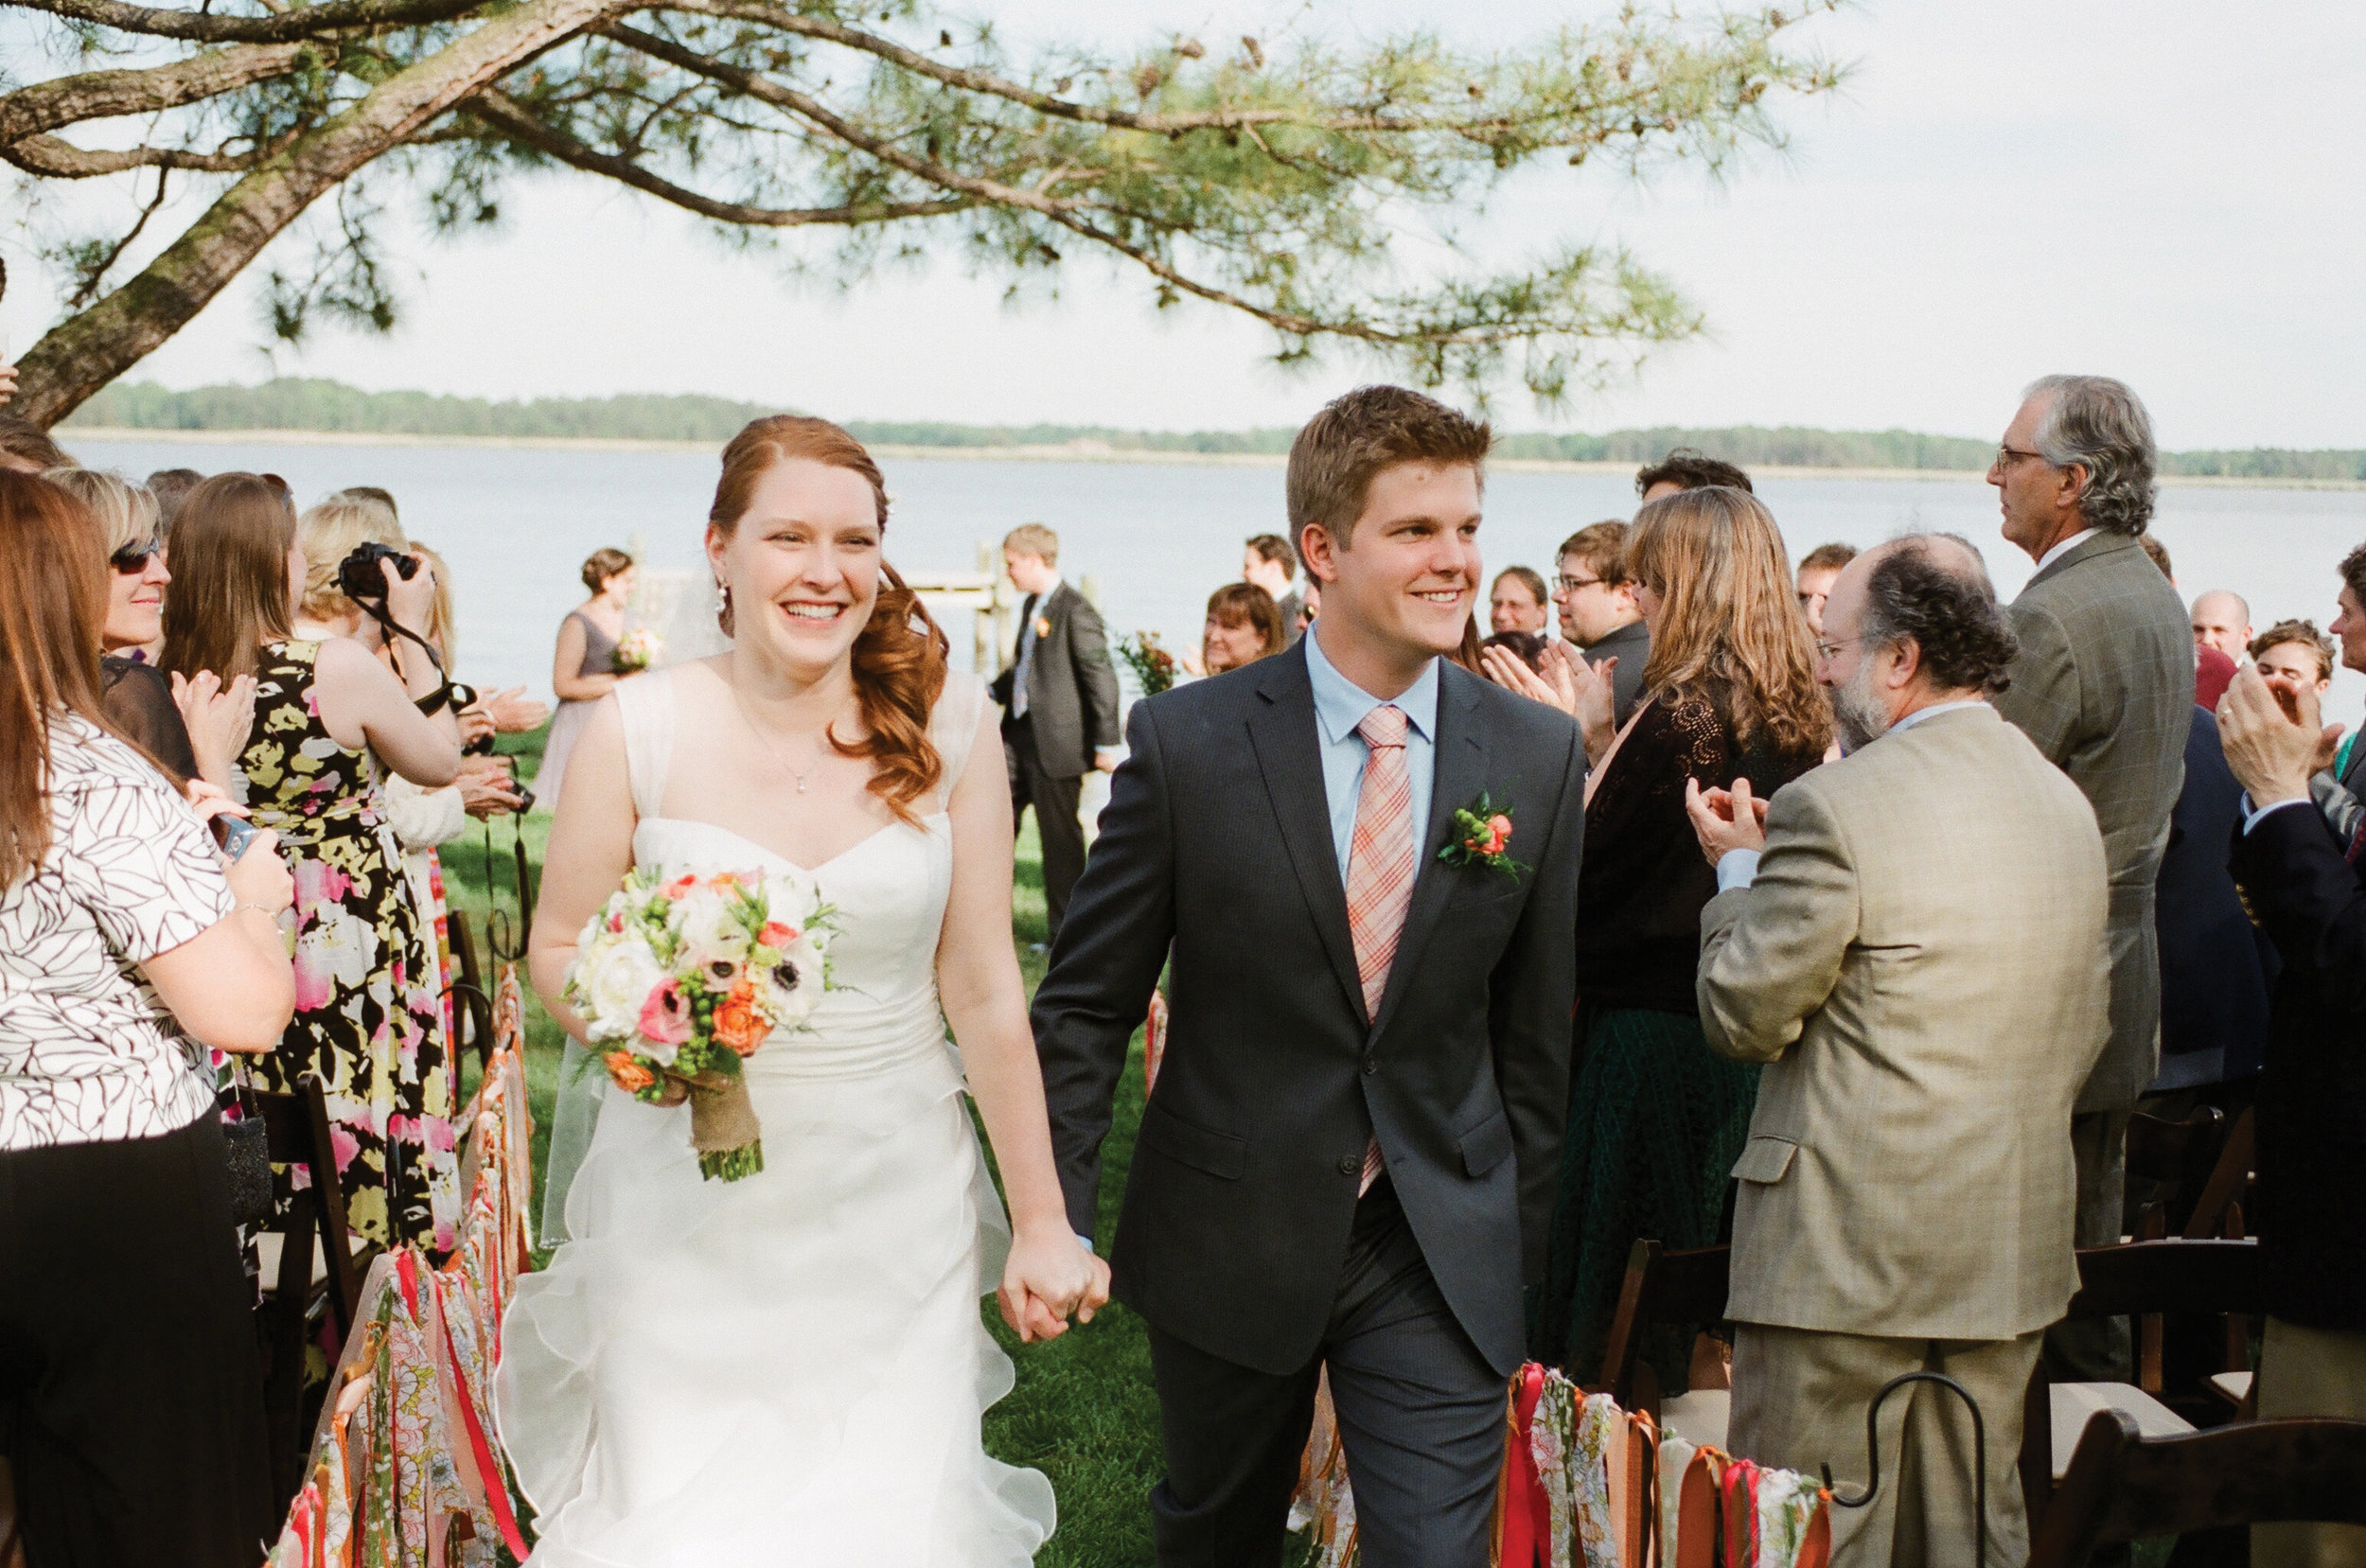 St-Michaels-Chesapeake-Bay-Maryland-Fine-Art-Wedding-Photographer-06.jpg